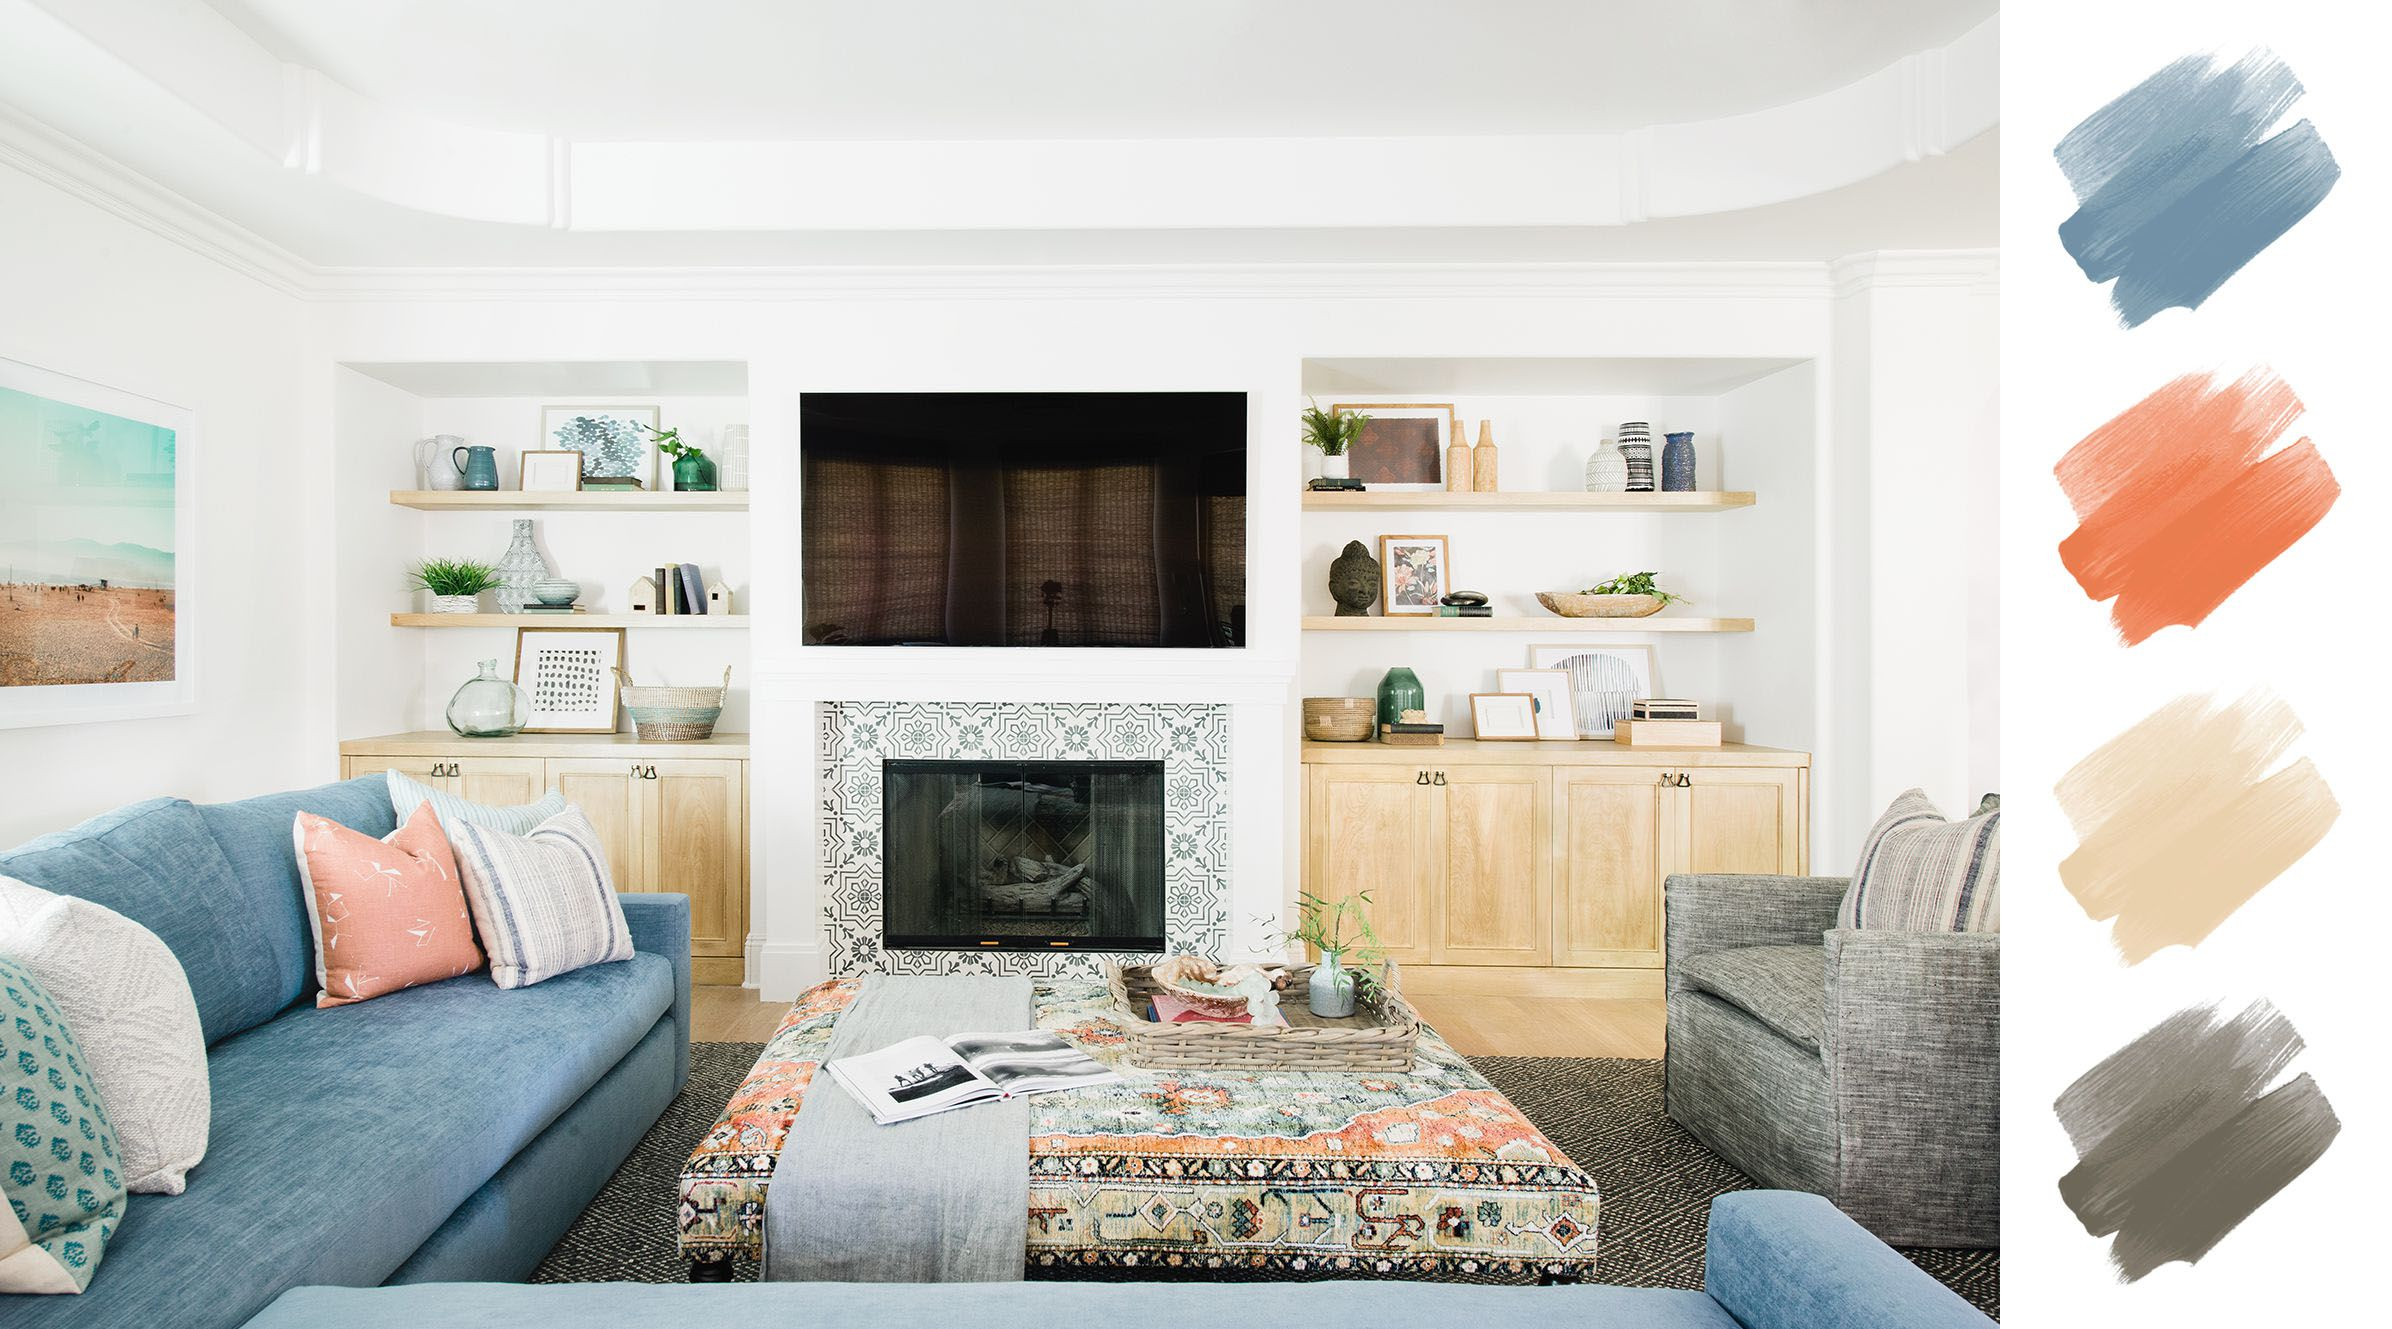 6 Gorgeous Living Room Color Schemes According To Designers